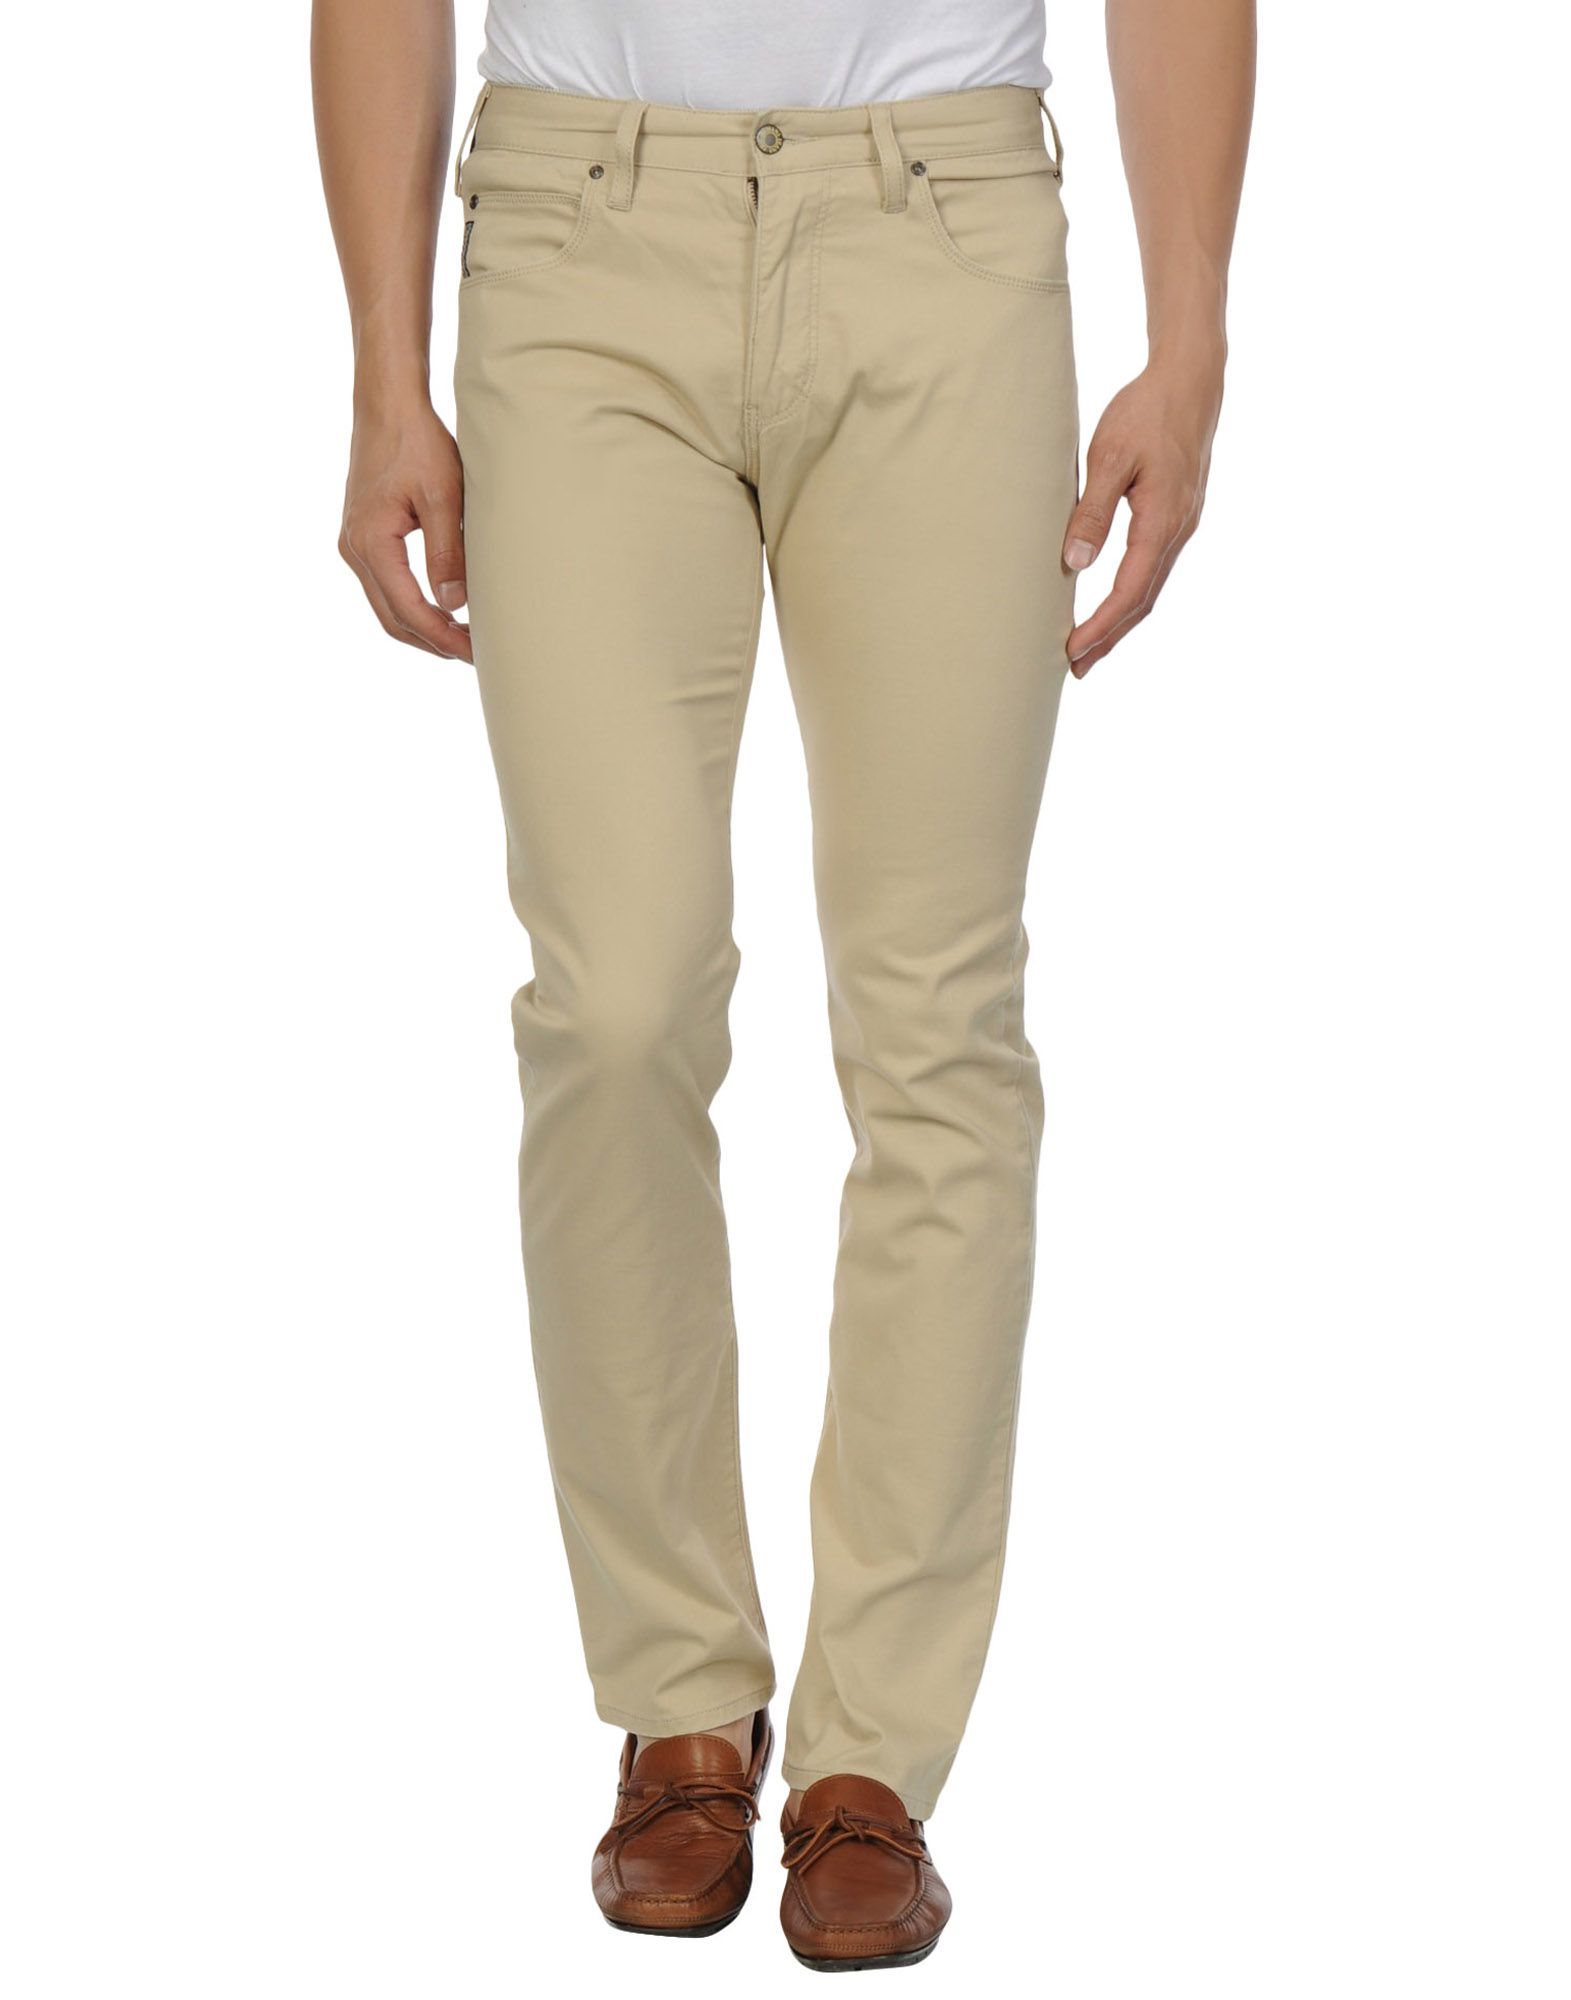 Free shipping and returns on Women's Beige Jeans & Denim at specialtysports.ga